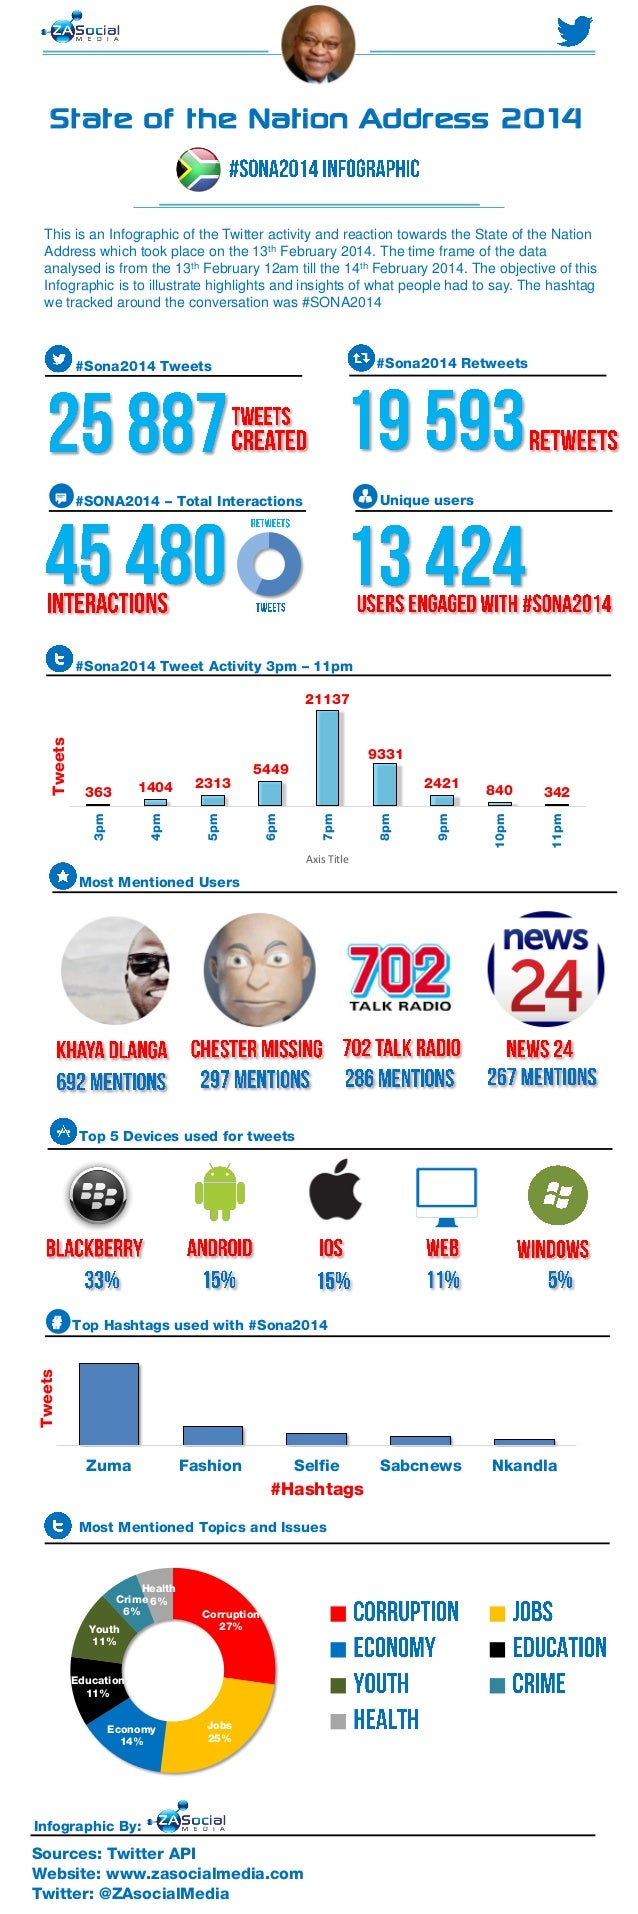 State of the Nation Address 2014 This is an Infographic of the Twitter activity and reaction towards the State of the Nati...